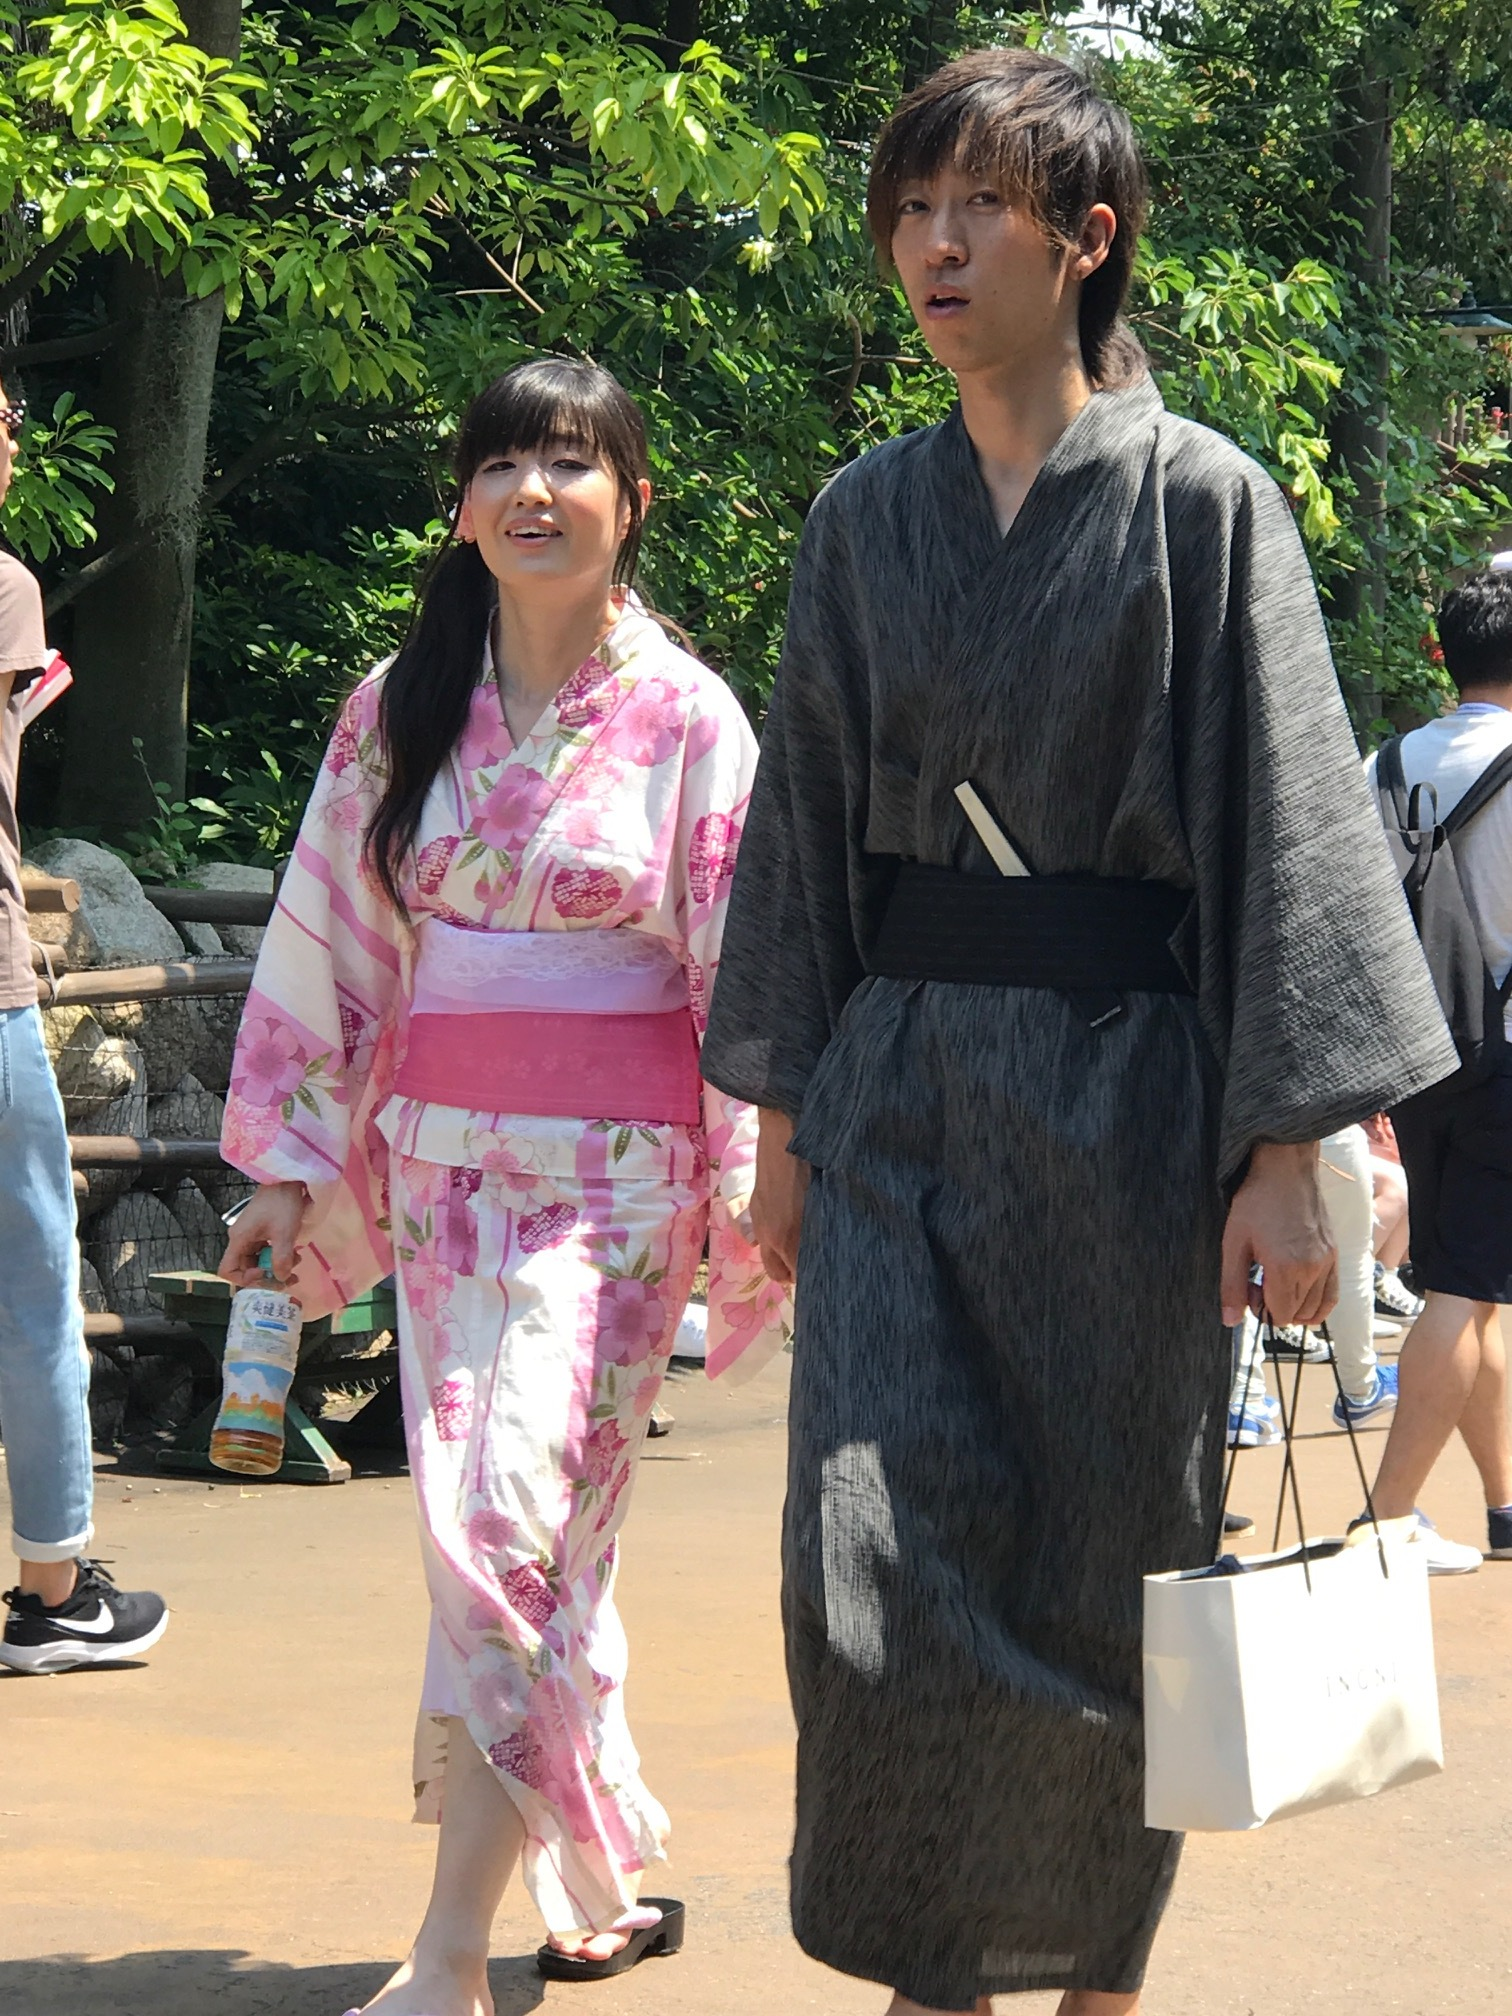 Wearing Yukata's at Disney Sea